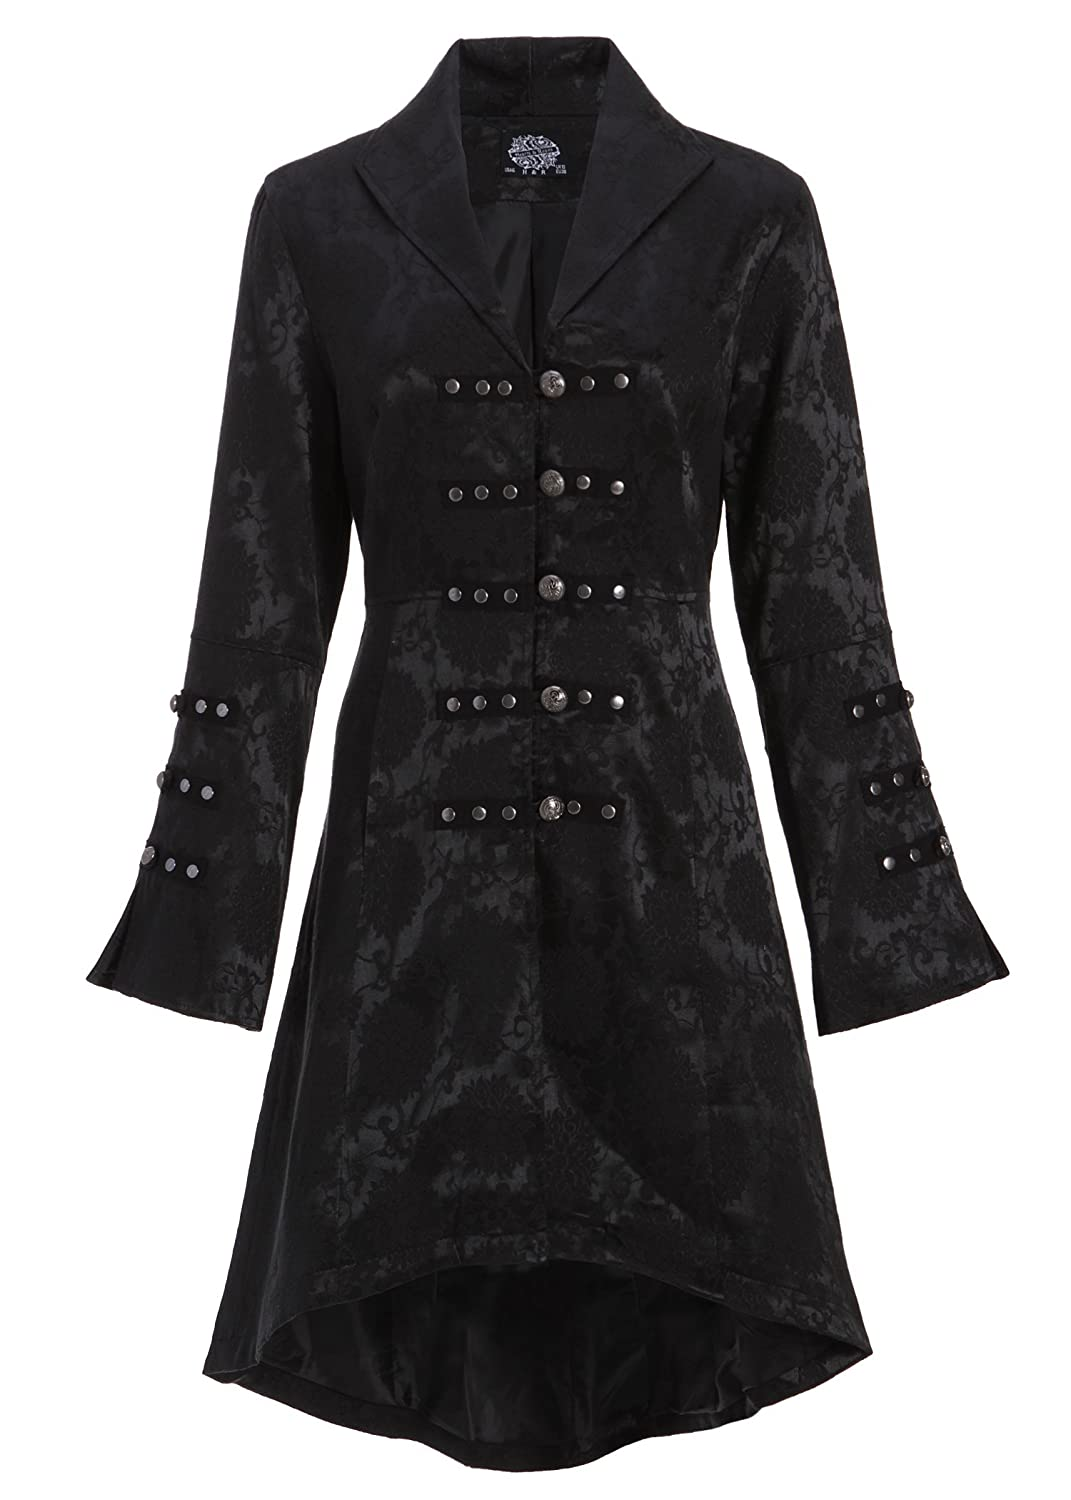 Womens Black Brocade Gothic Steampunk Floral Jacket Coat